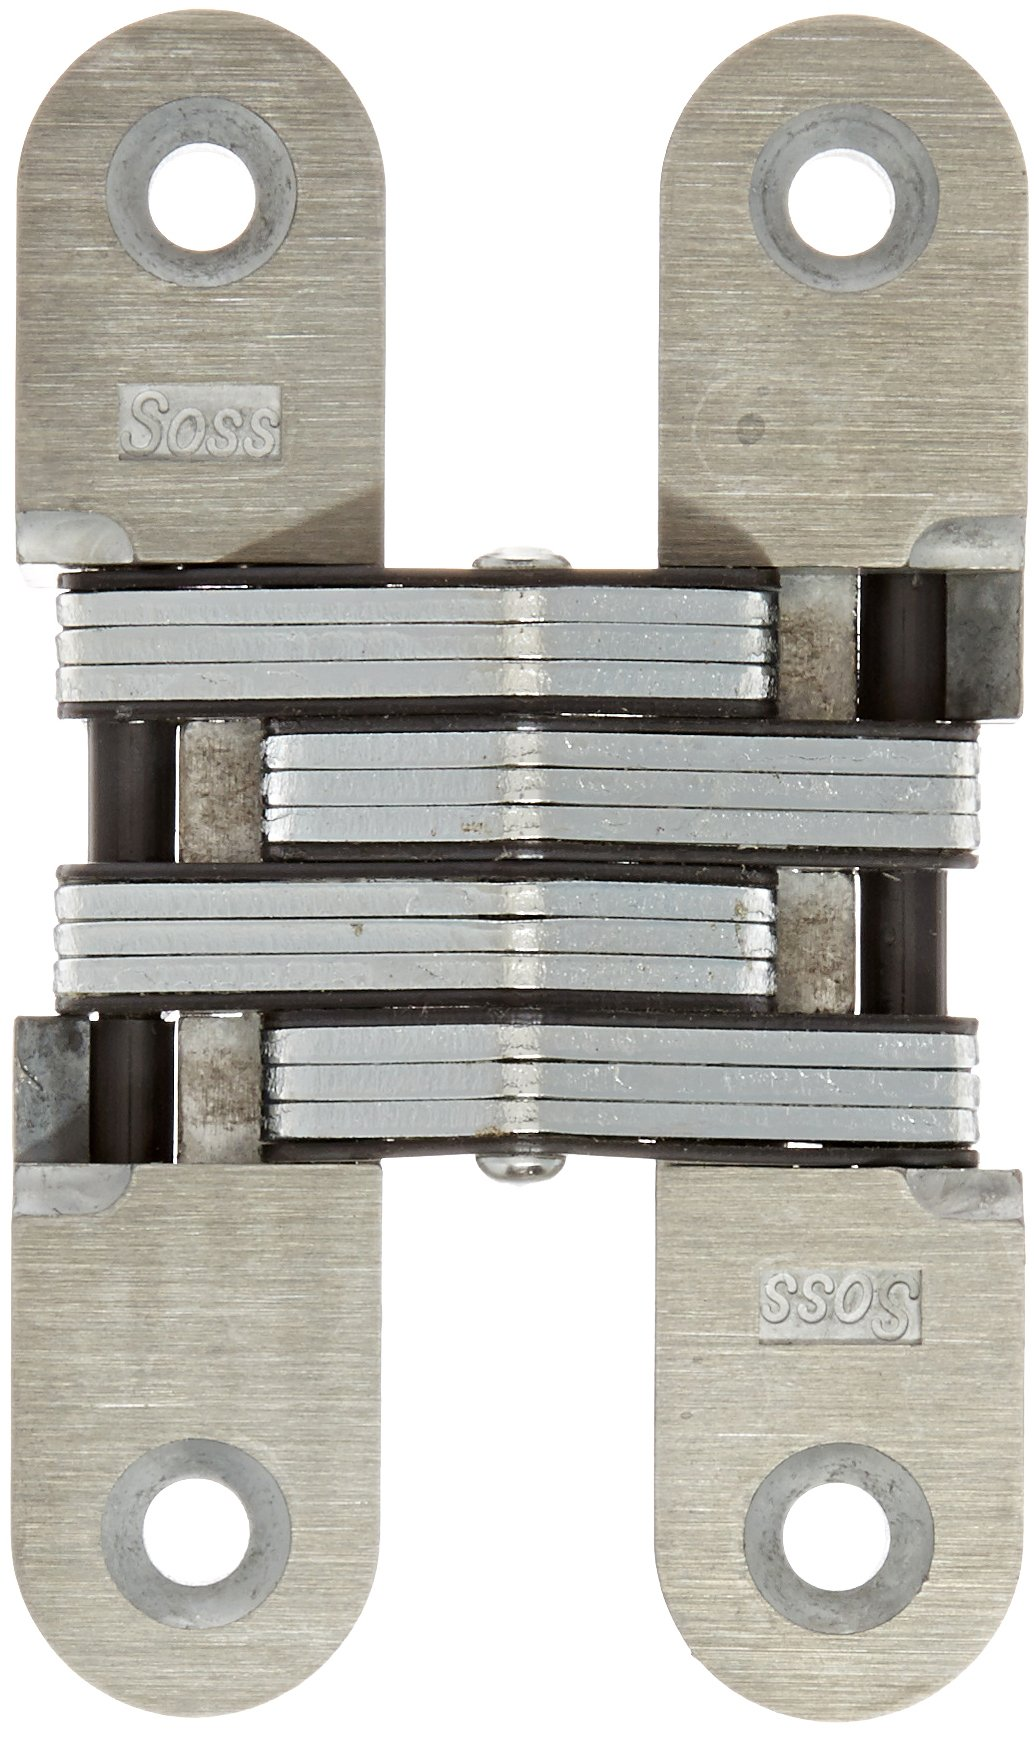 SOSS 216 Zinc Invisible Hinge with Holes for Wood or Metal Applications, Mortise Mounting, Unplated